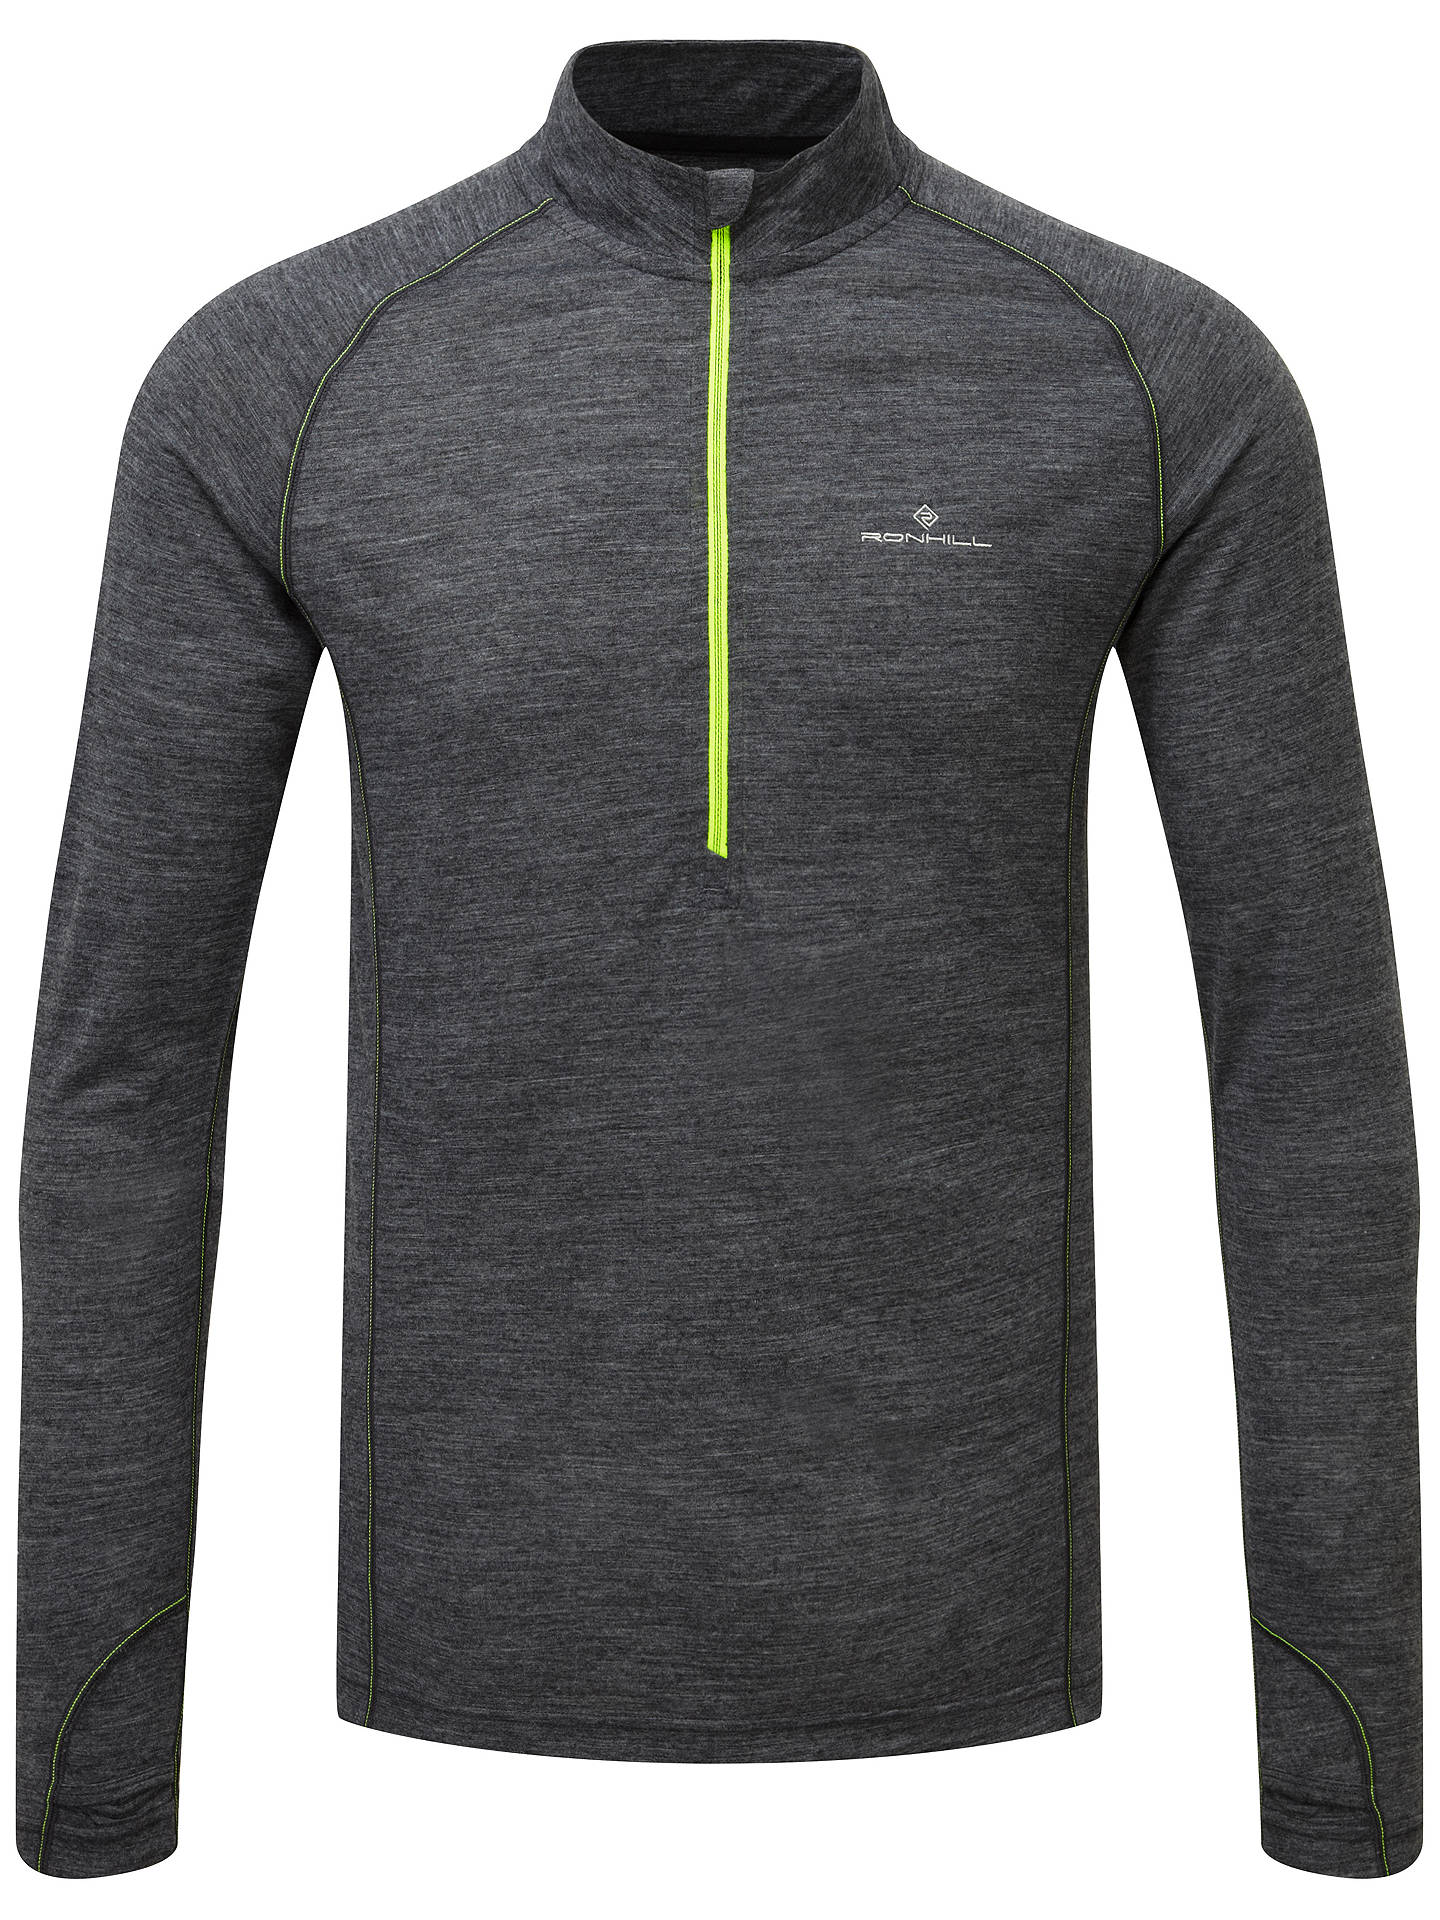 BuyRonhill Infinity Merino Blend 1/2 Zip Long Sleeve Running Top, Grey/Yellow, S Online at johnlewis.com